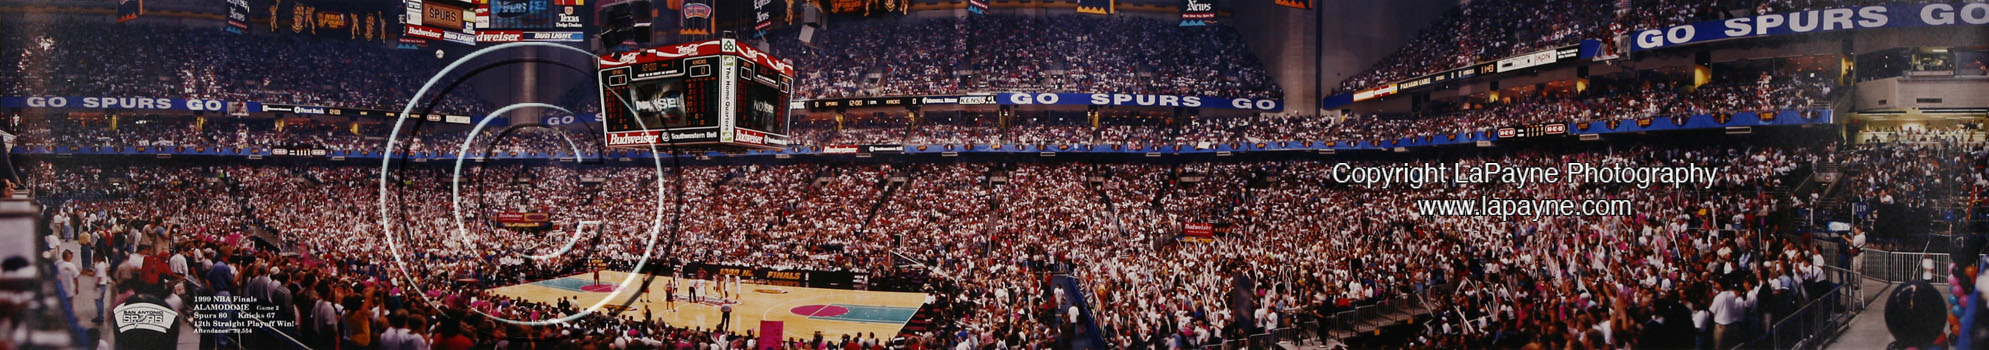 NBA Finals 1999 Game 2